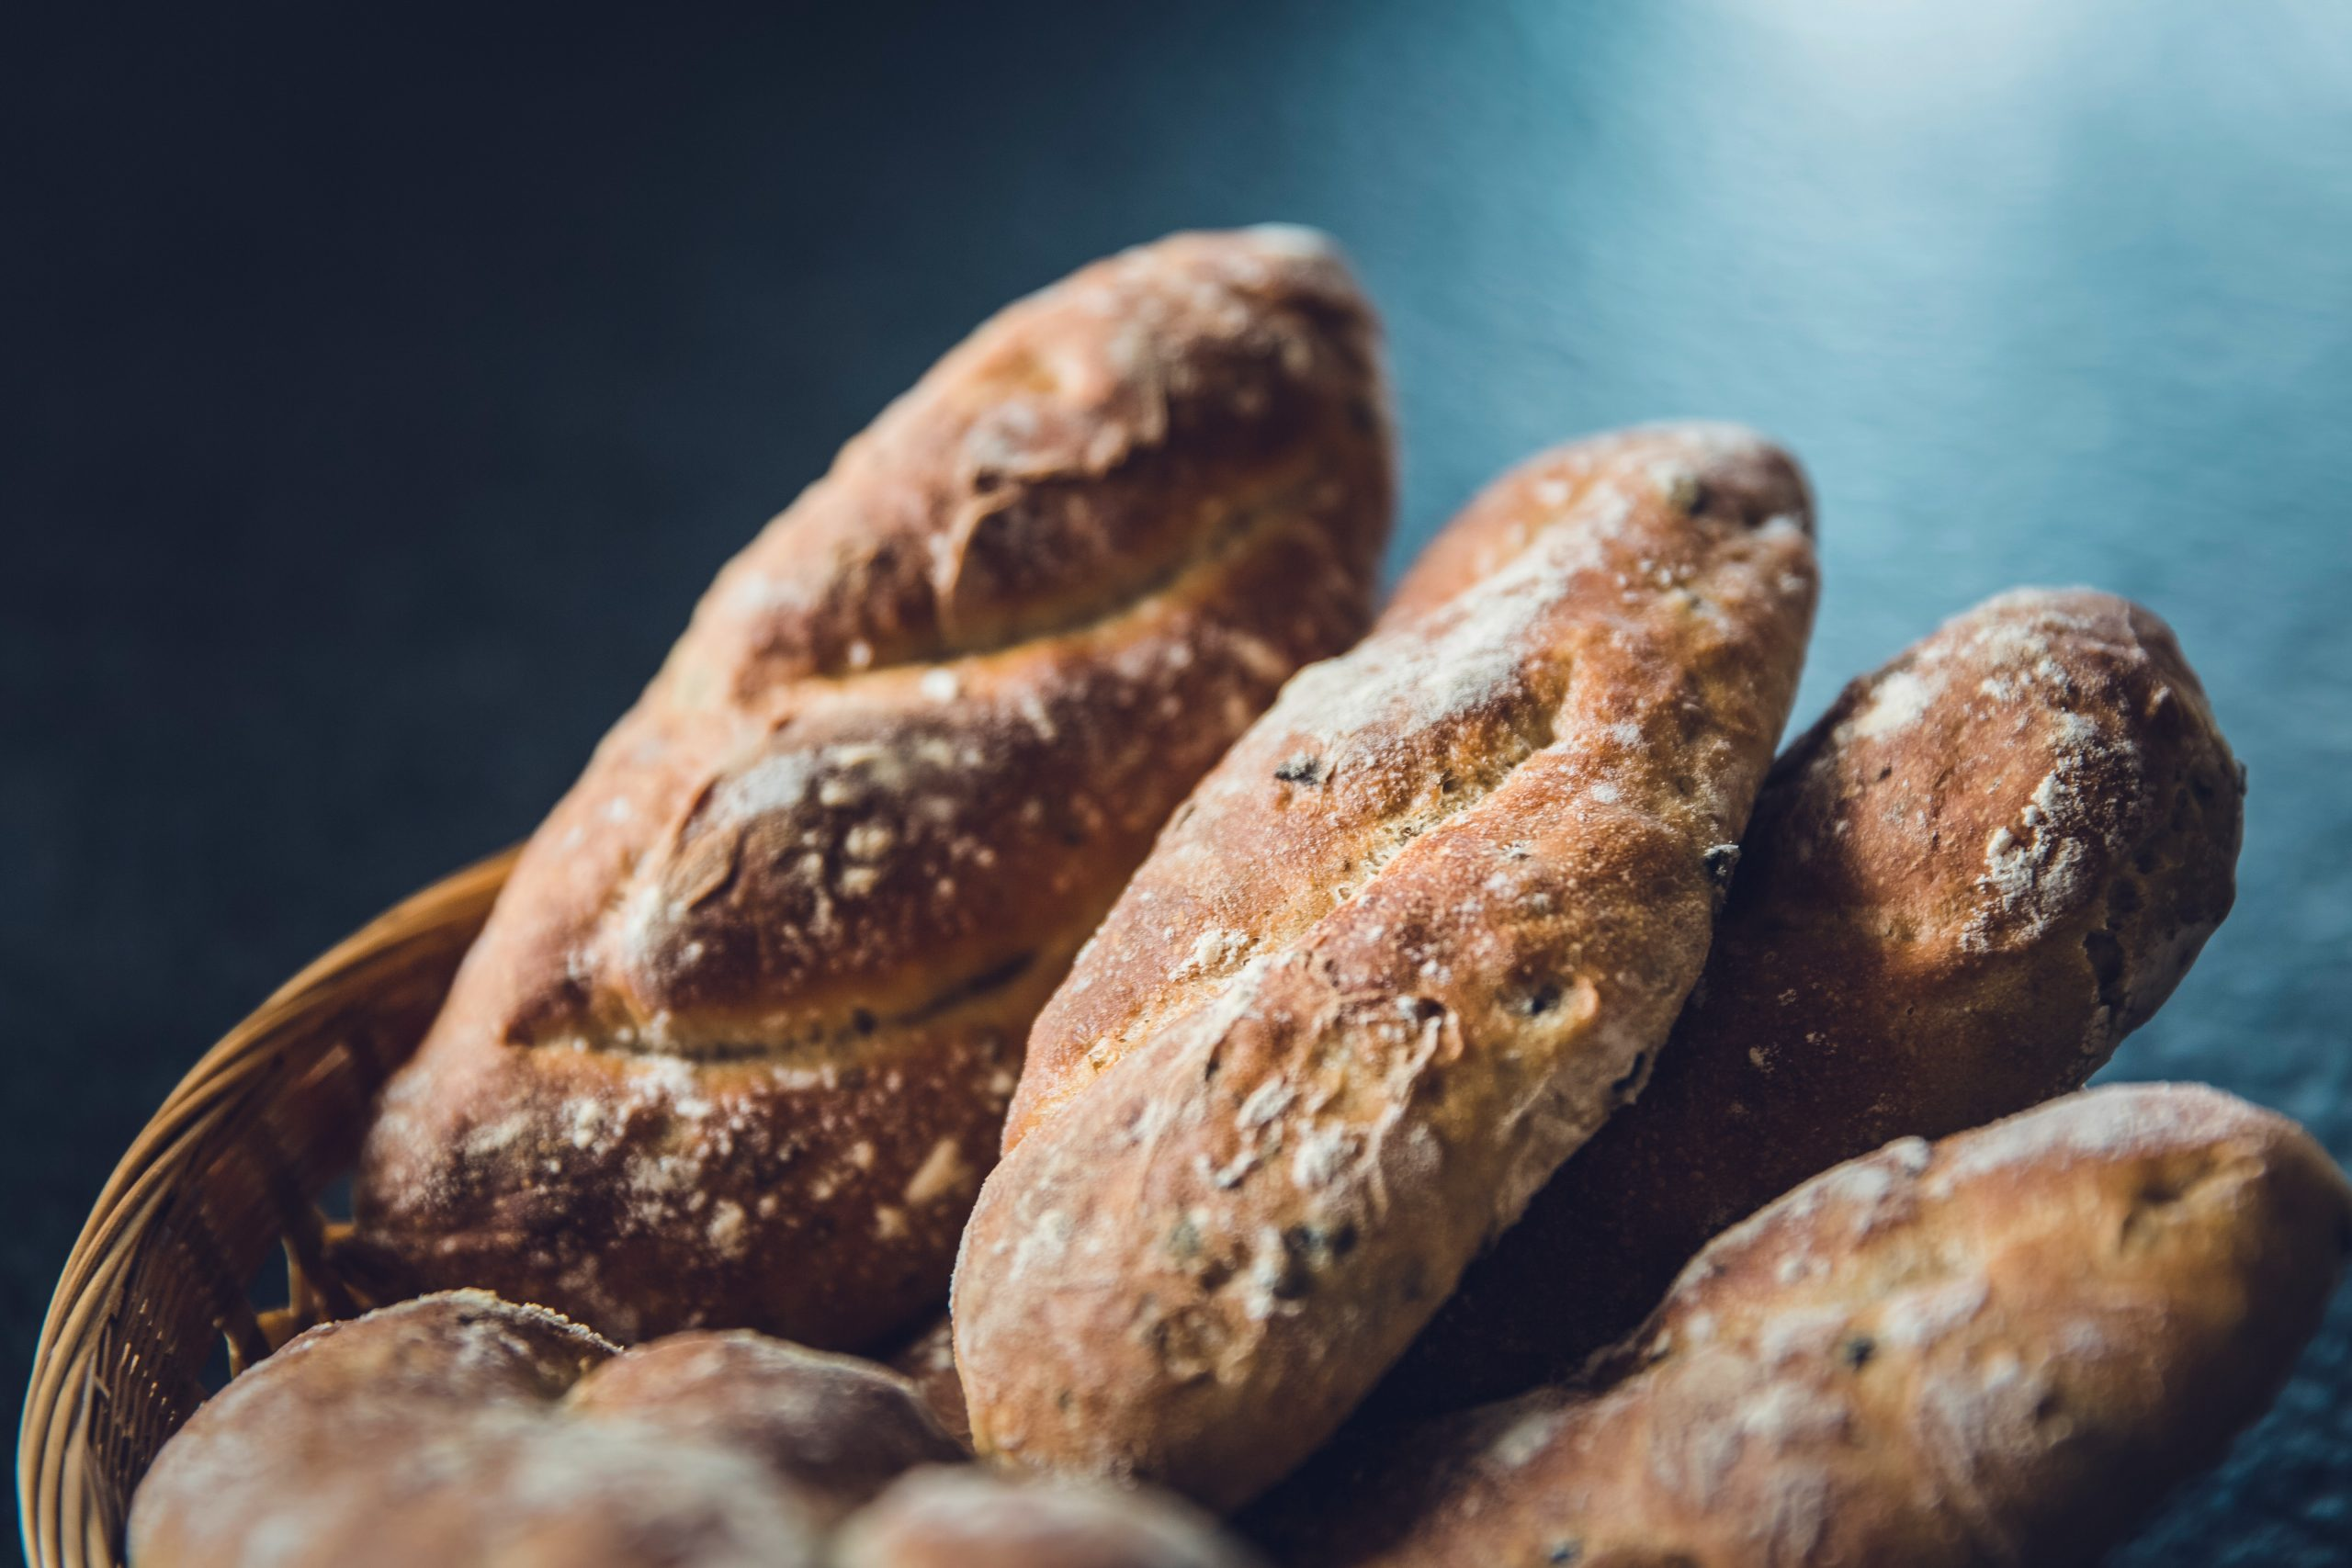 Bread in a basket; could you have a gluten sensitivity?